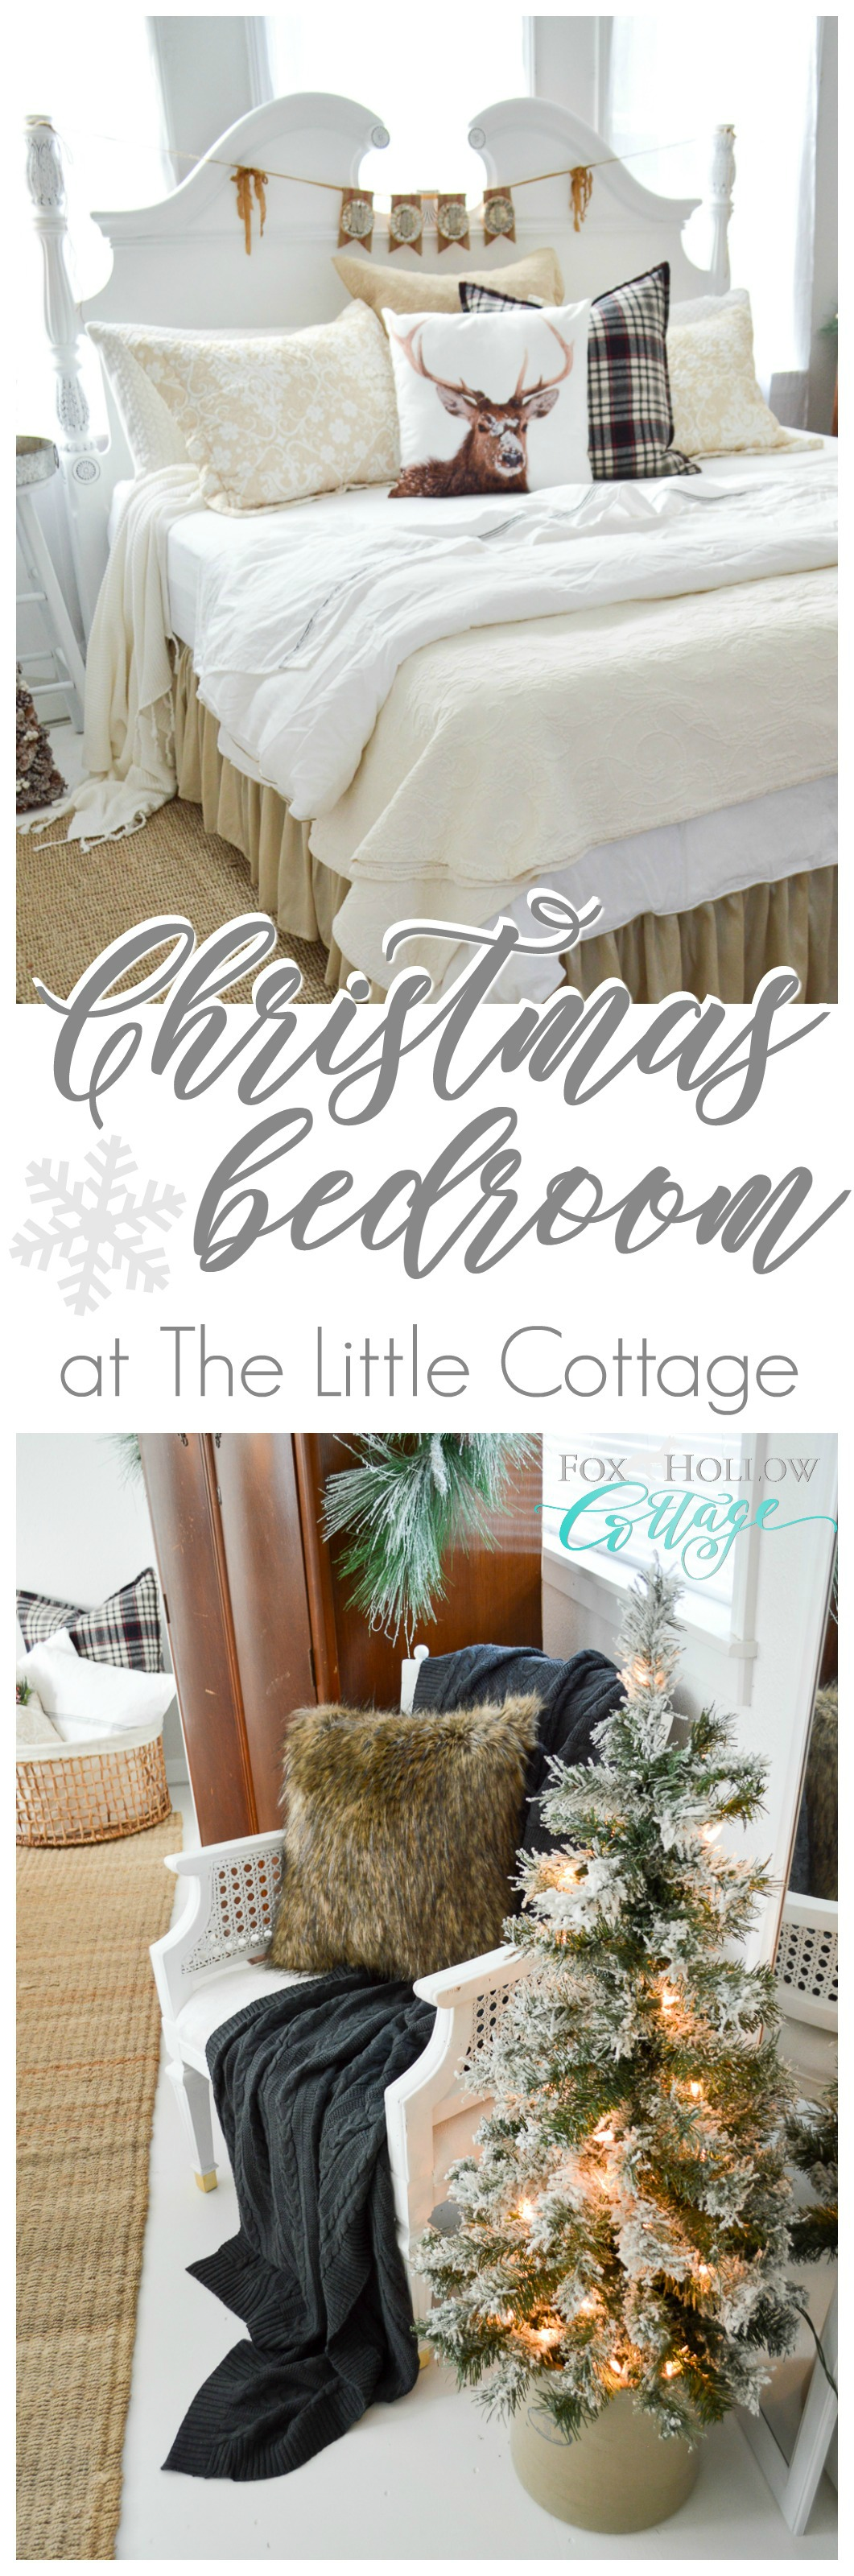 Merry Christmas Guest Bedroom at The Little Cottage foxhollowcottage.com Ideas for Vintage, Cottage Farmhouse Style Decorating on a Budget.